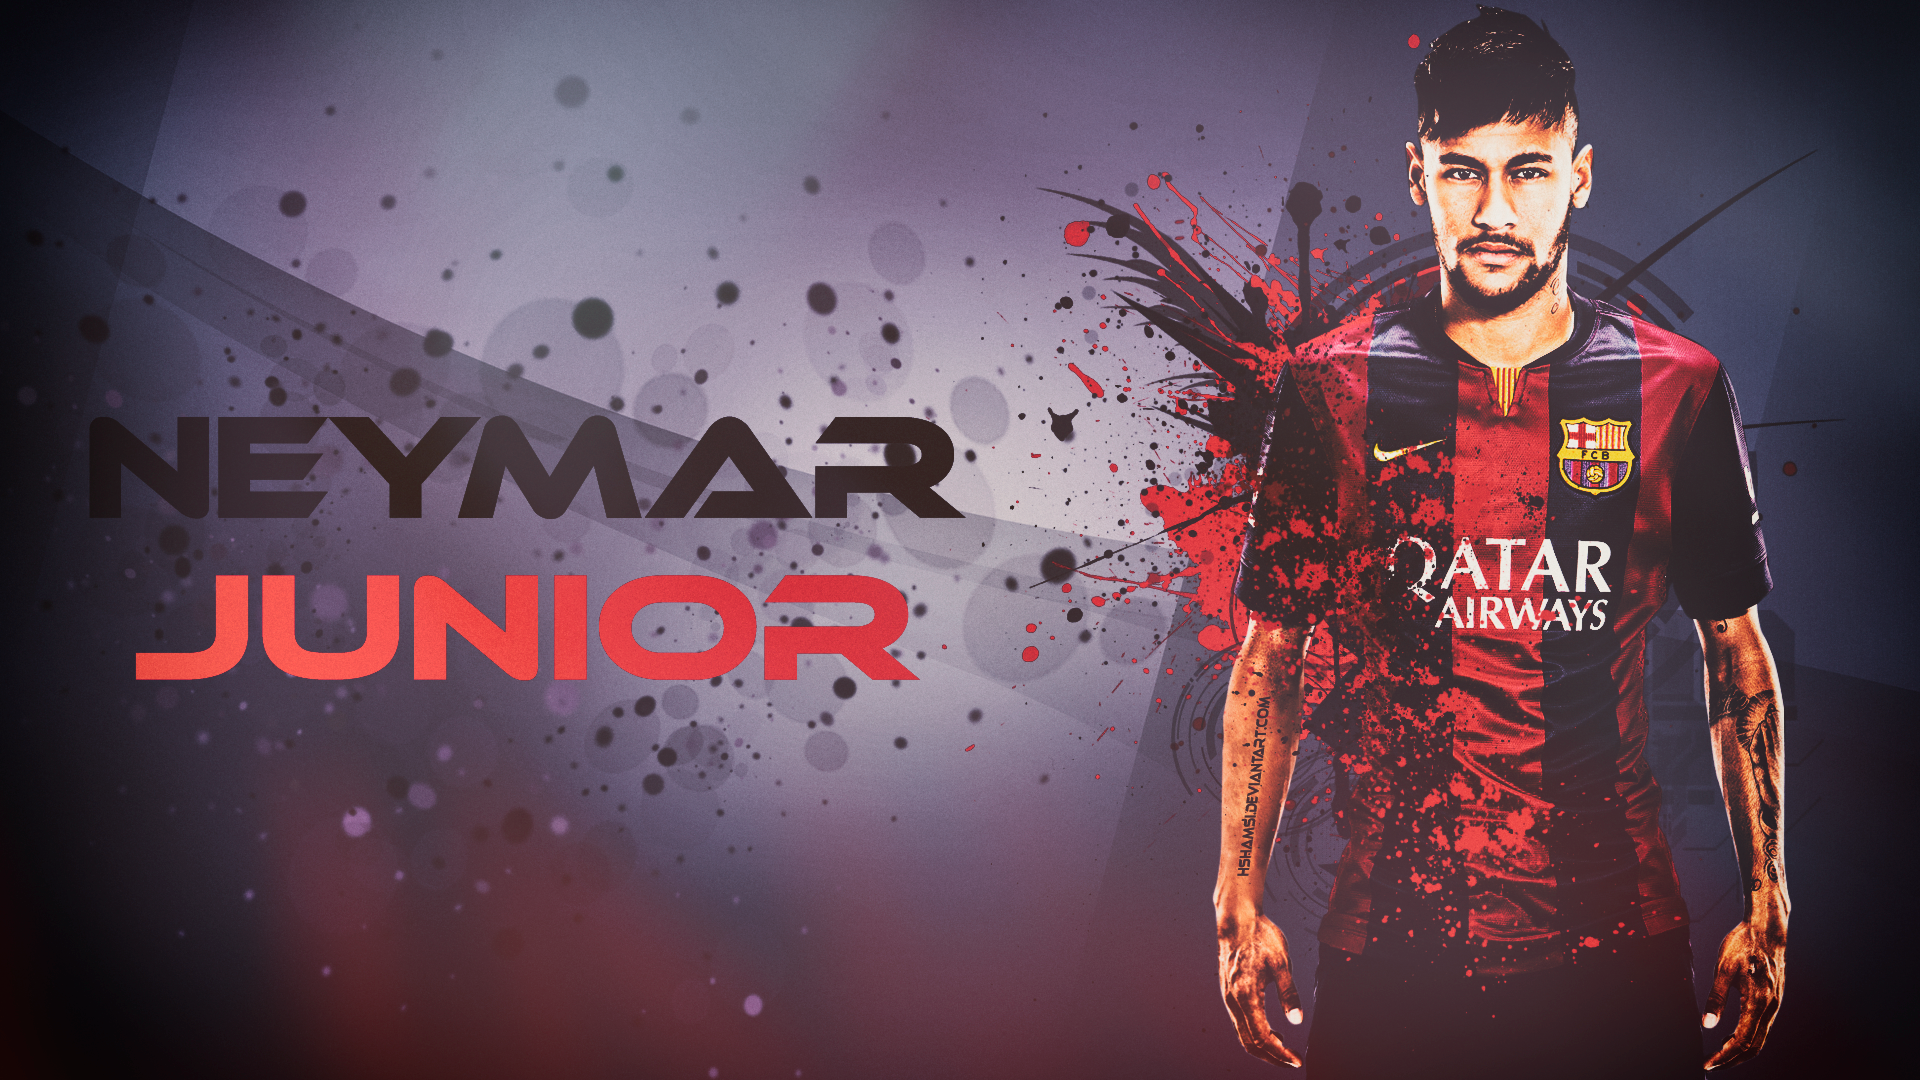 Hd wallpaper neymar - Neymar Hd Wallpapers 2015 Wallpaper Cave